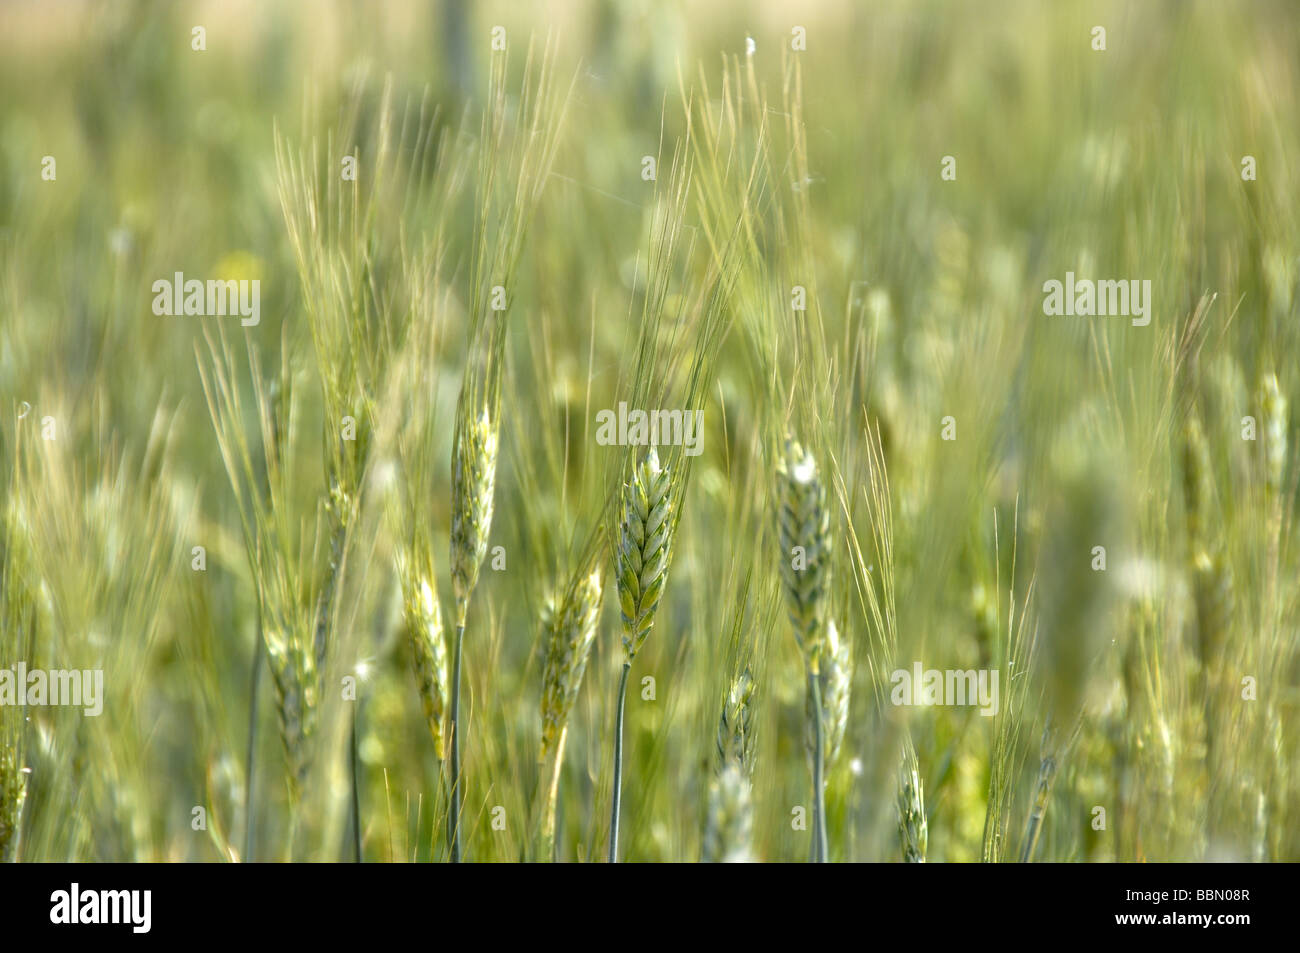 Wheat spikes - Stock Image